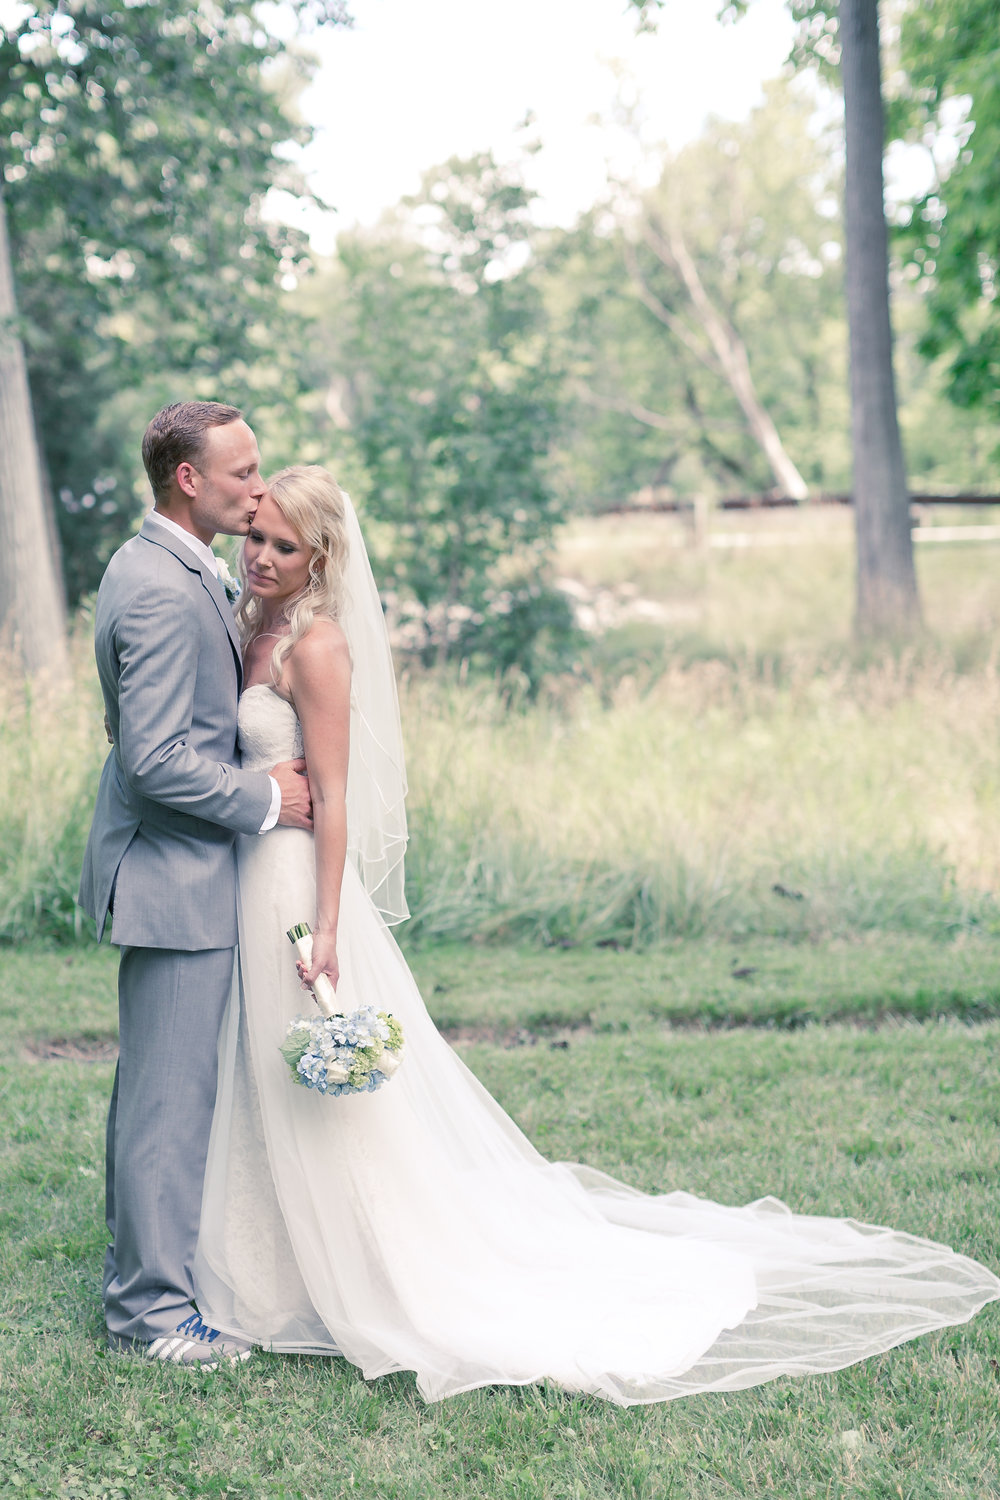 Kelly & Mike | Married | Lauren Alisse Photography -234.jpg